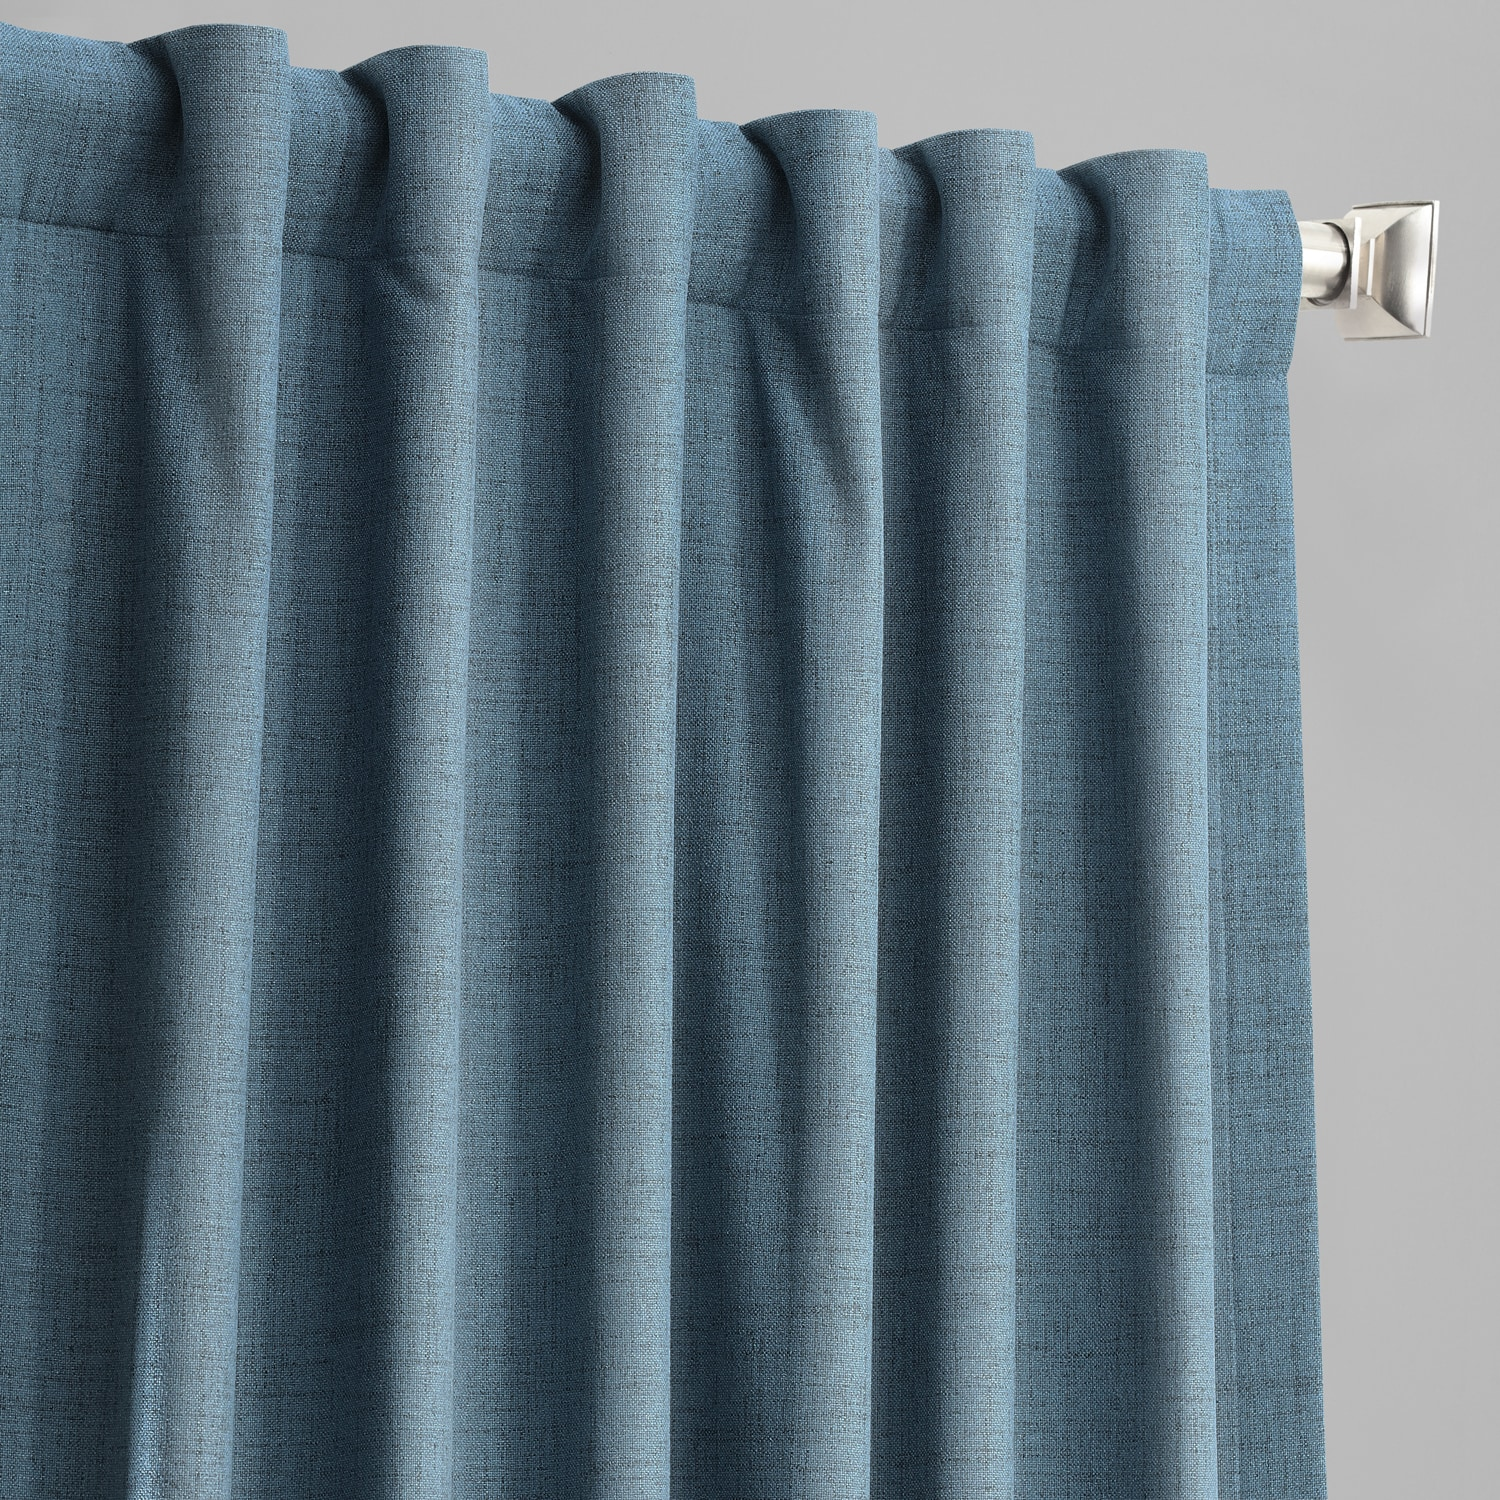 Ovation Blue Vintage Thermal Cross Linen Weave Max Blackout Curtain